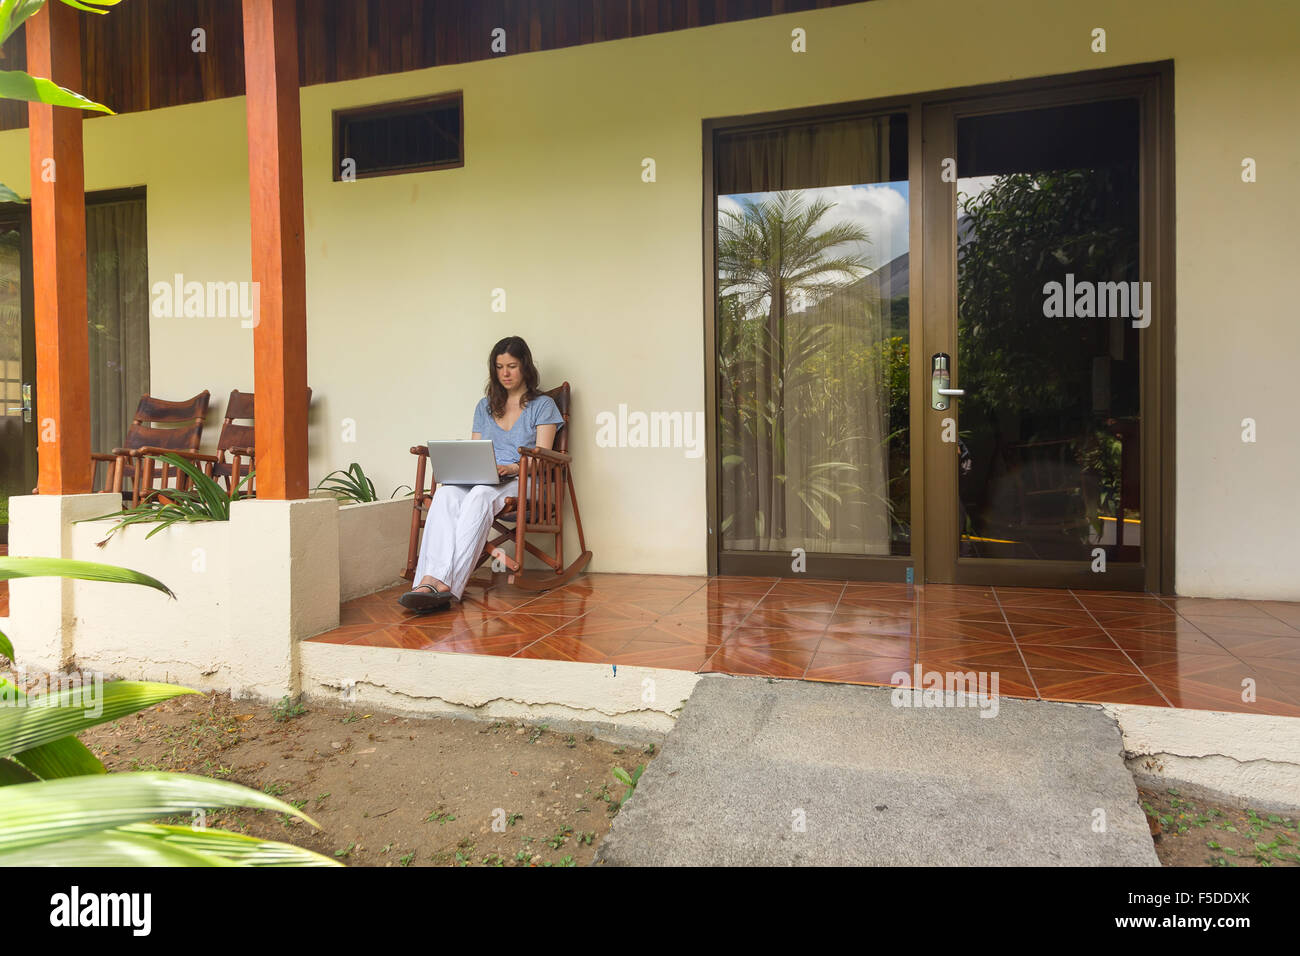 Woman sitting on the veranda and working on laptop - Stock Image